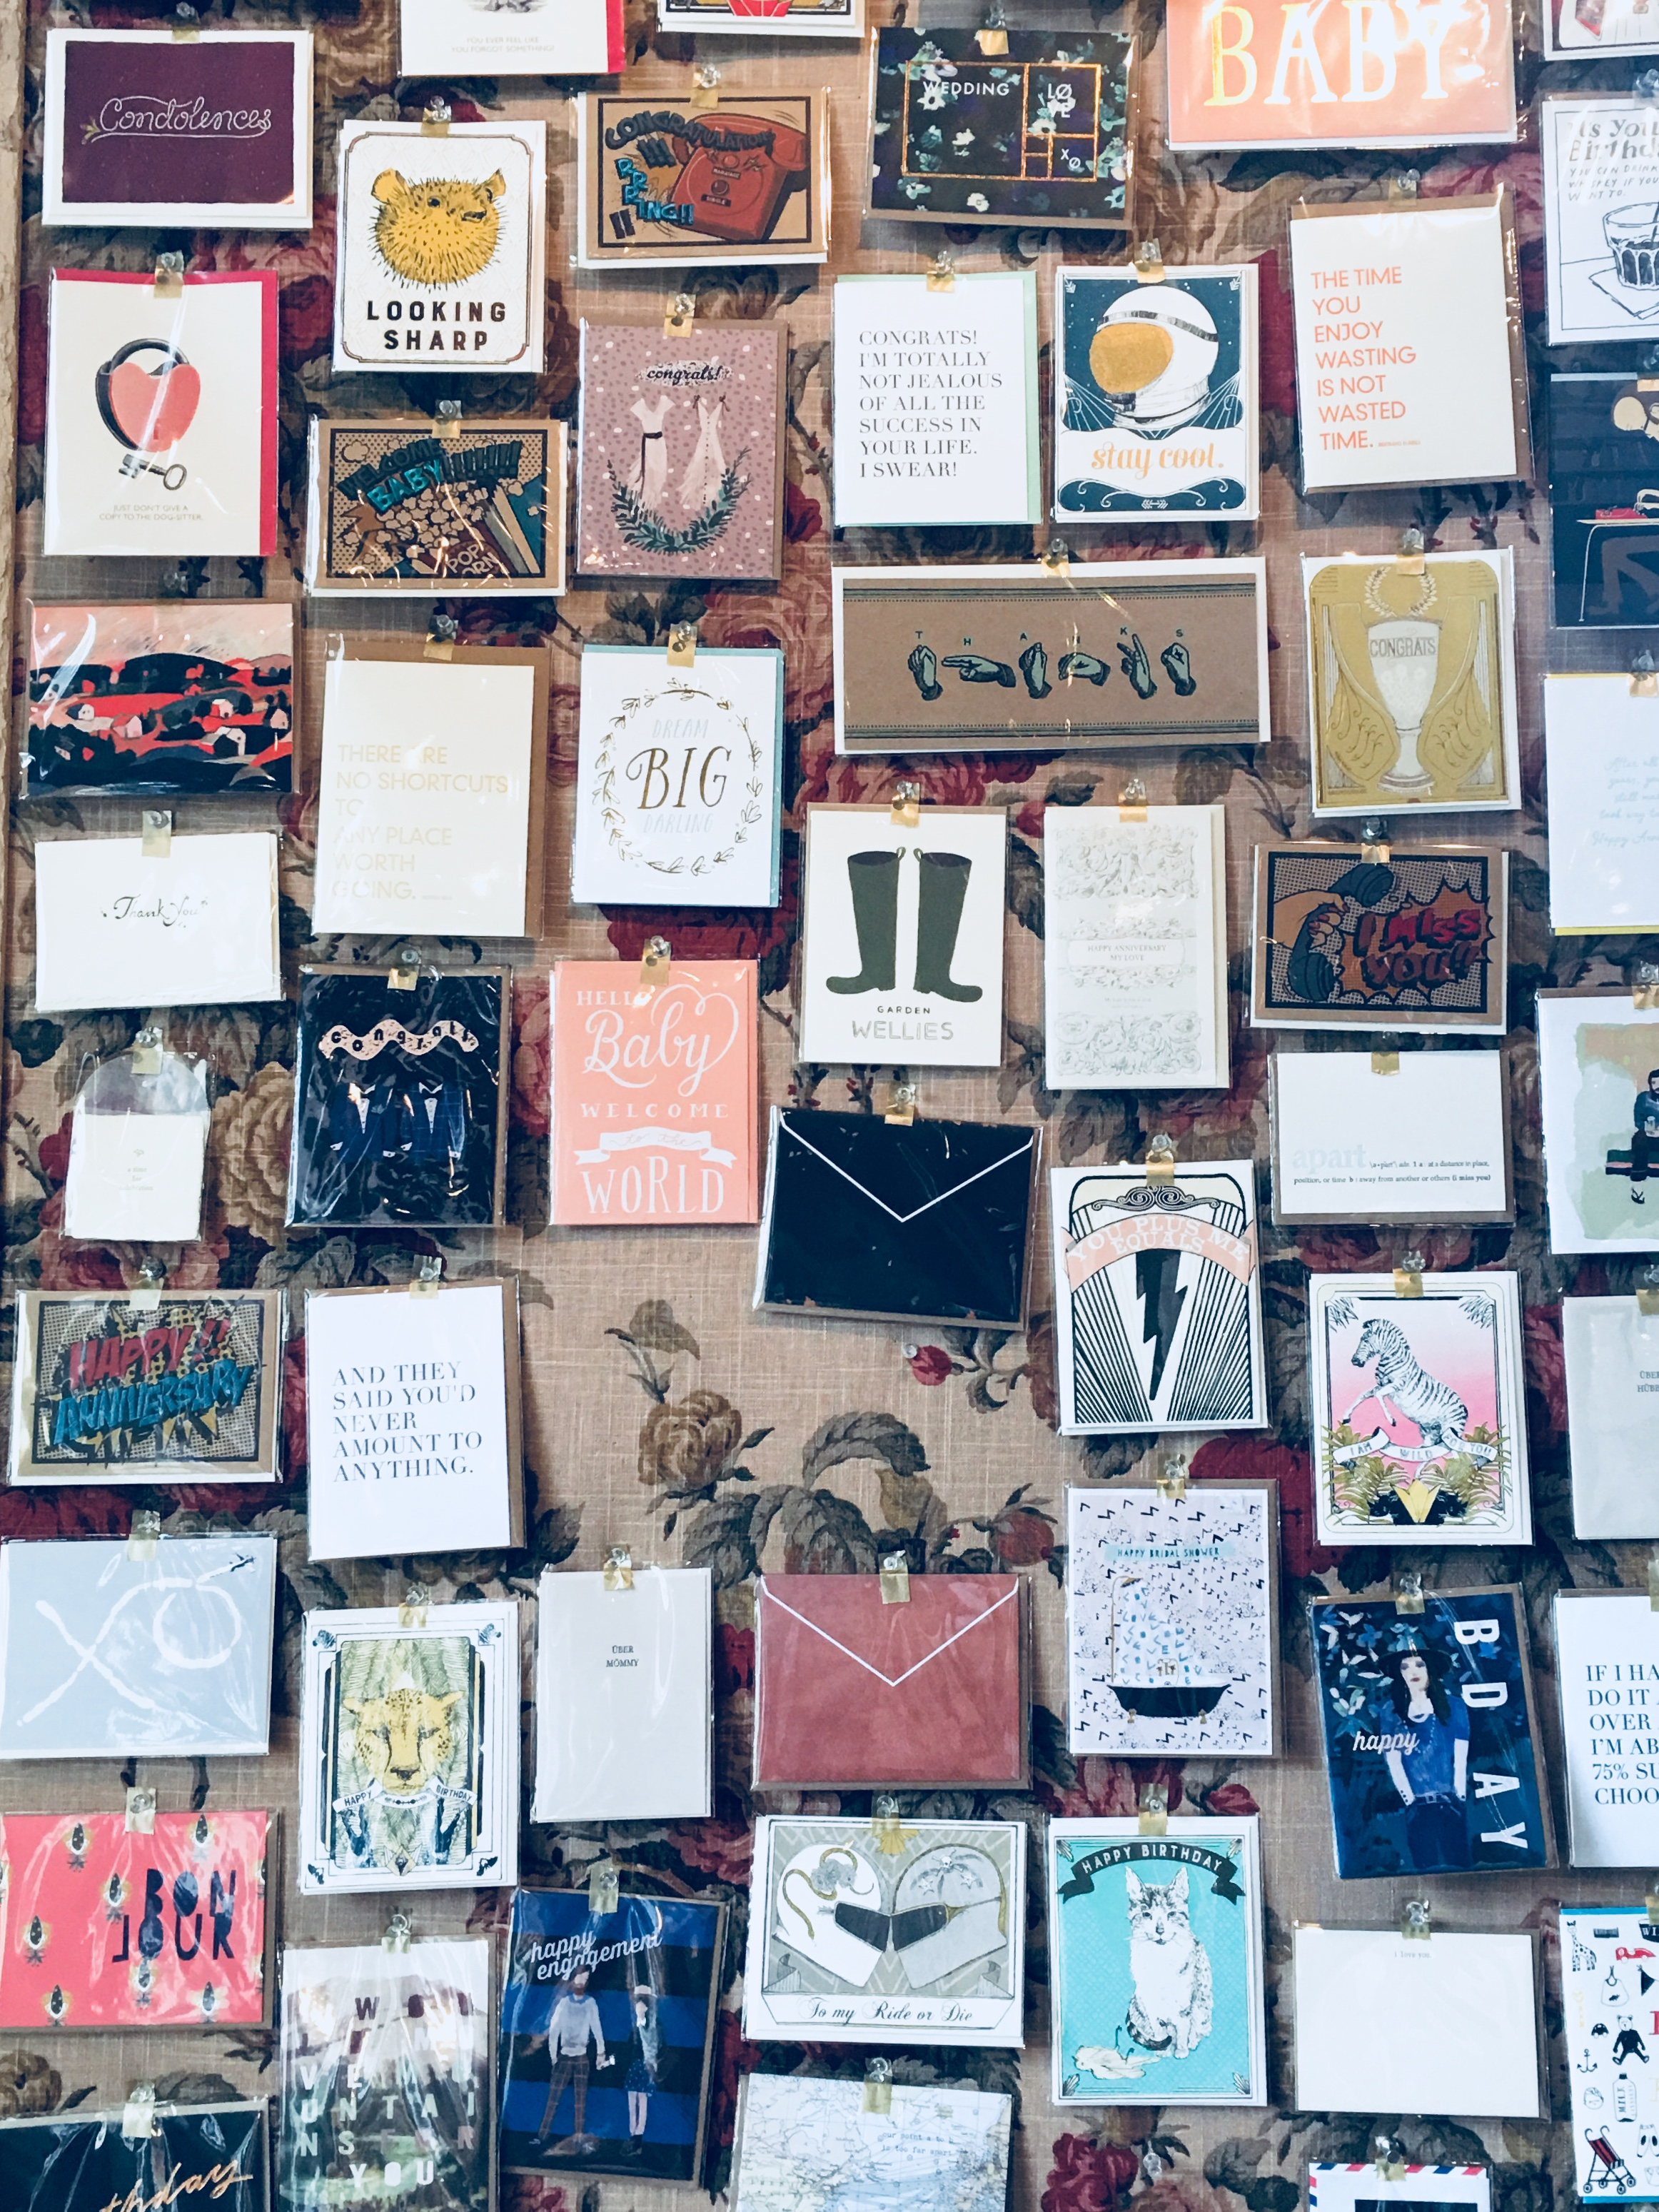 Individual cards are displayed artfully on the wall at Box Paper Scissor in New Orleans, LA.